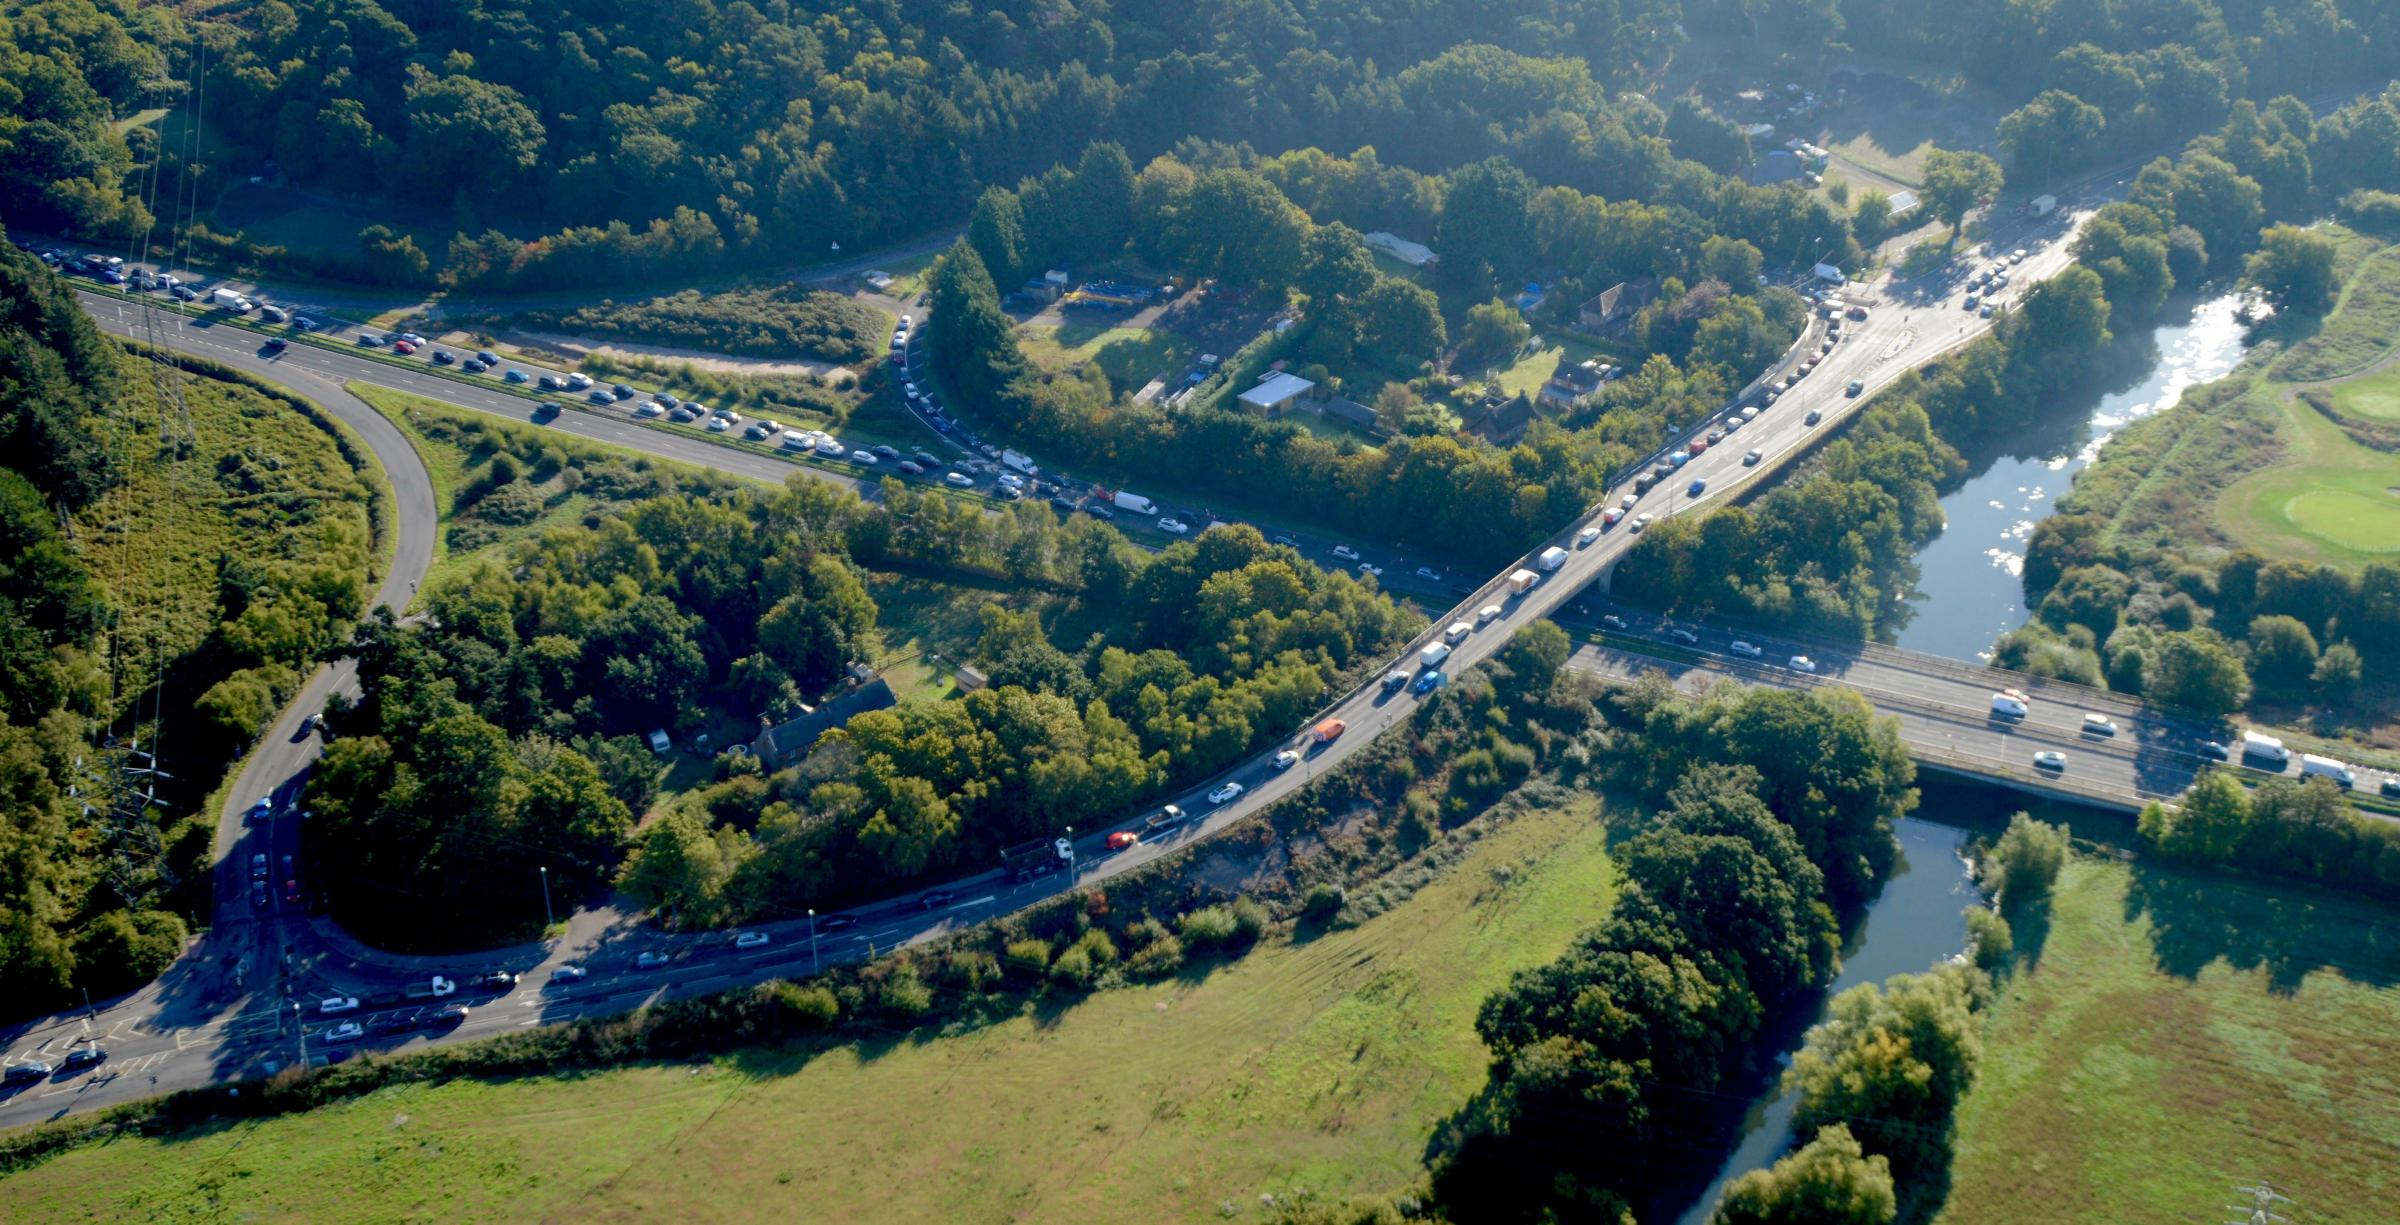 A338 northbound on sliproad at Blackwater to be closed overnight next week